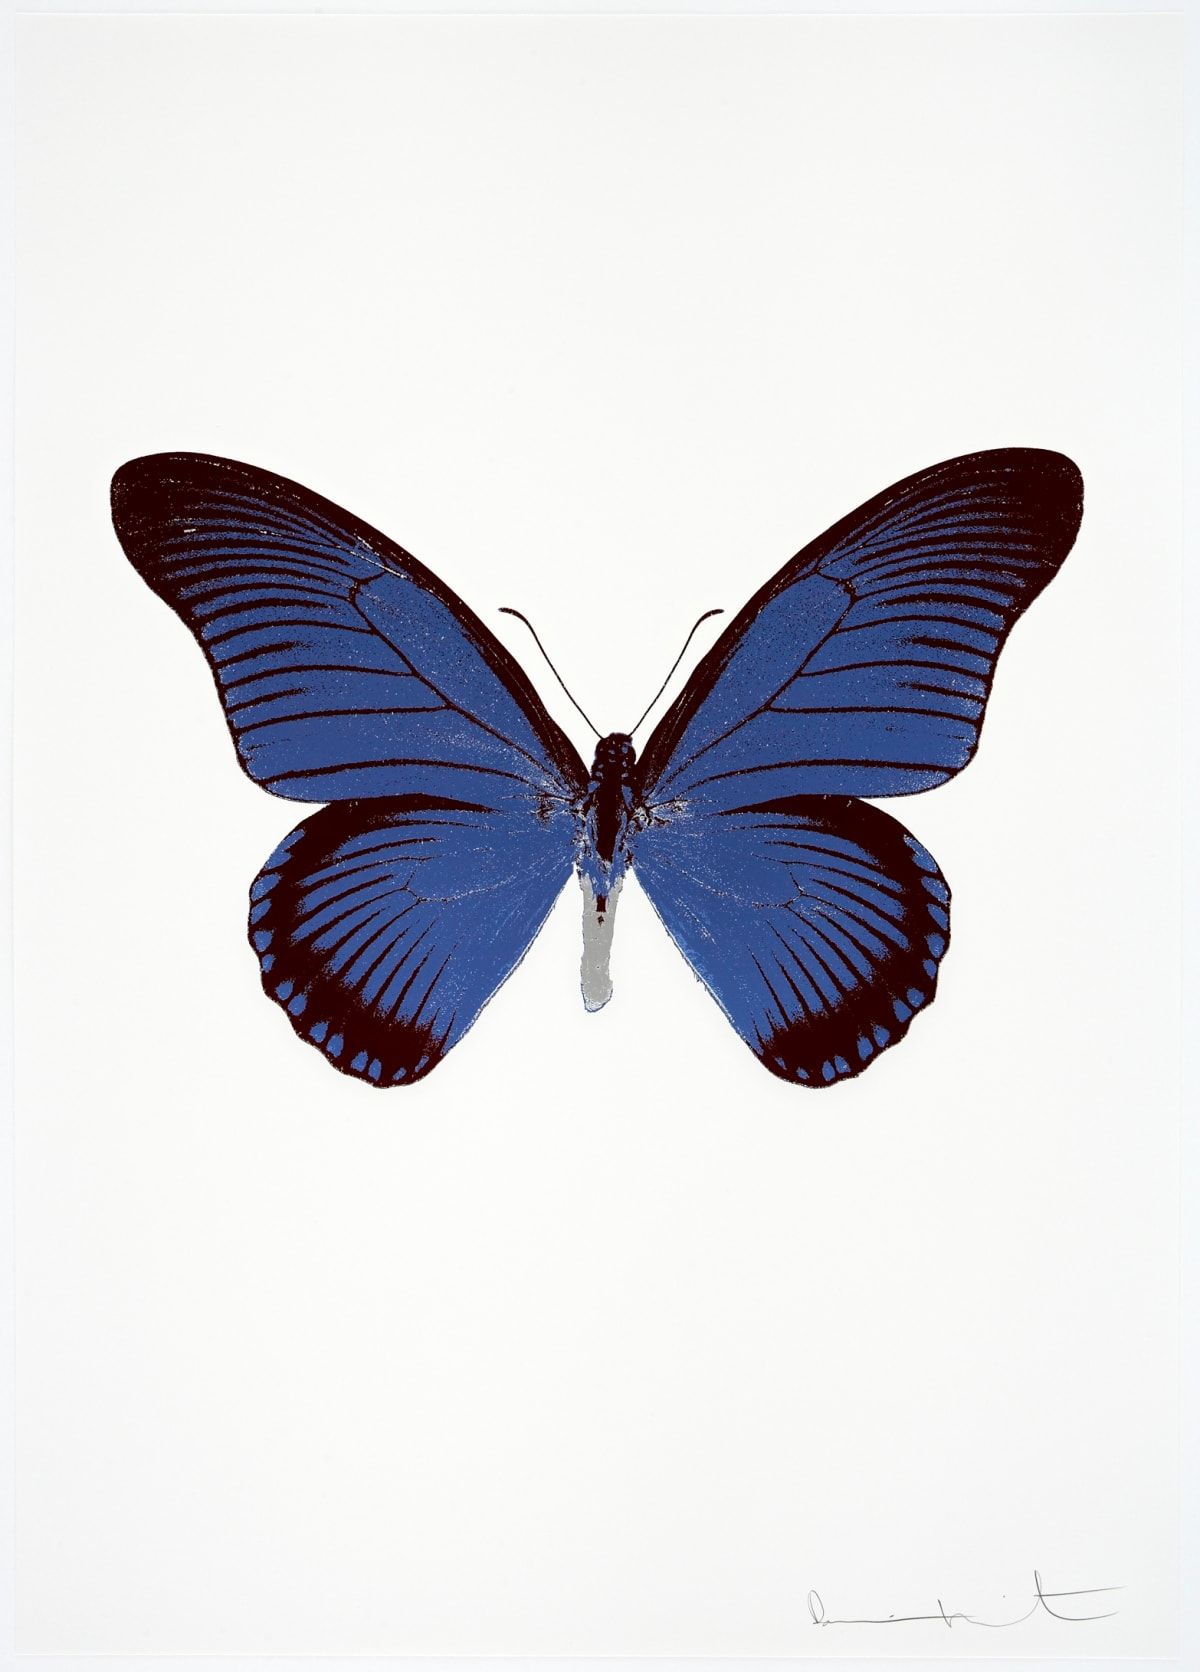 Damien Hirst The Souls IV - Frost Blue/Burgundy/Silver Gloss, 2010 3 colour foil block on 300gsm Arches 88 archival paper. Signed and numbered. Published by Paul Stolper and Other Criteria 72 x 51cm OC8023 / 1418-46 Edition of 15